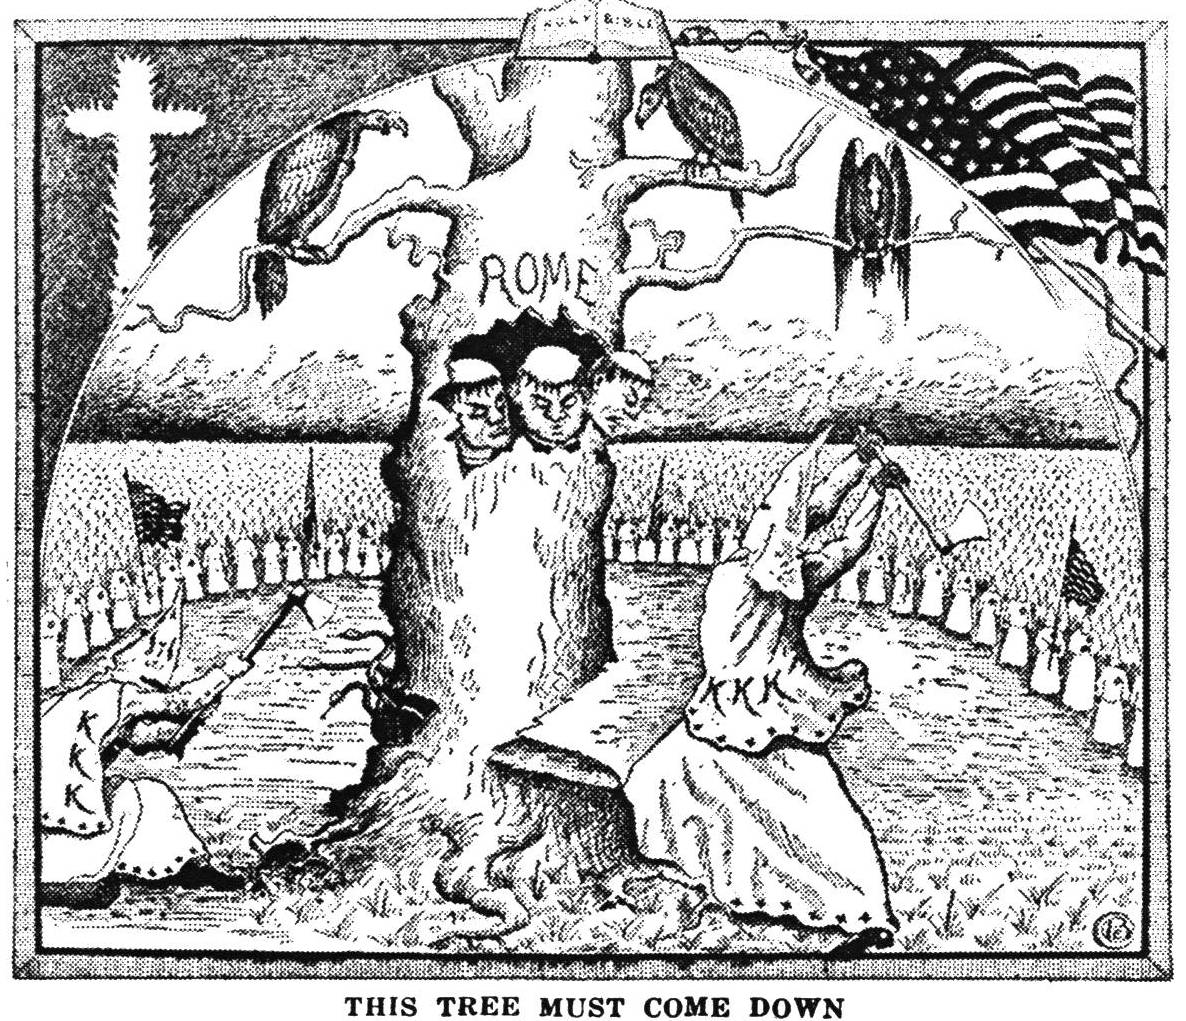 Cartoon illustrating The Ku Klux Klan in Prophecy, published by the Pillar of Fire in 1925.